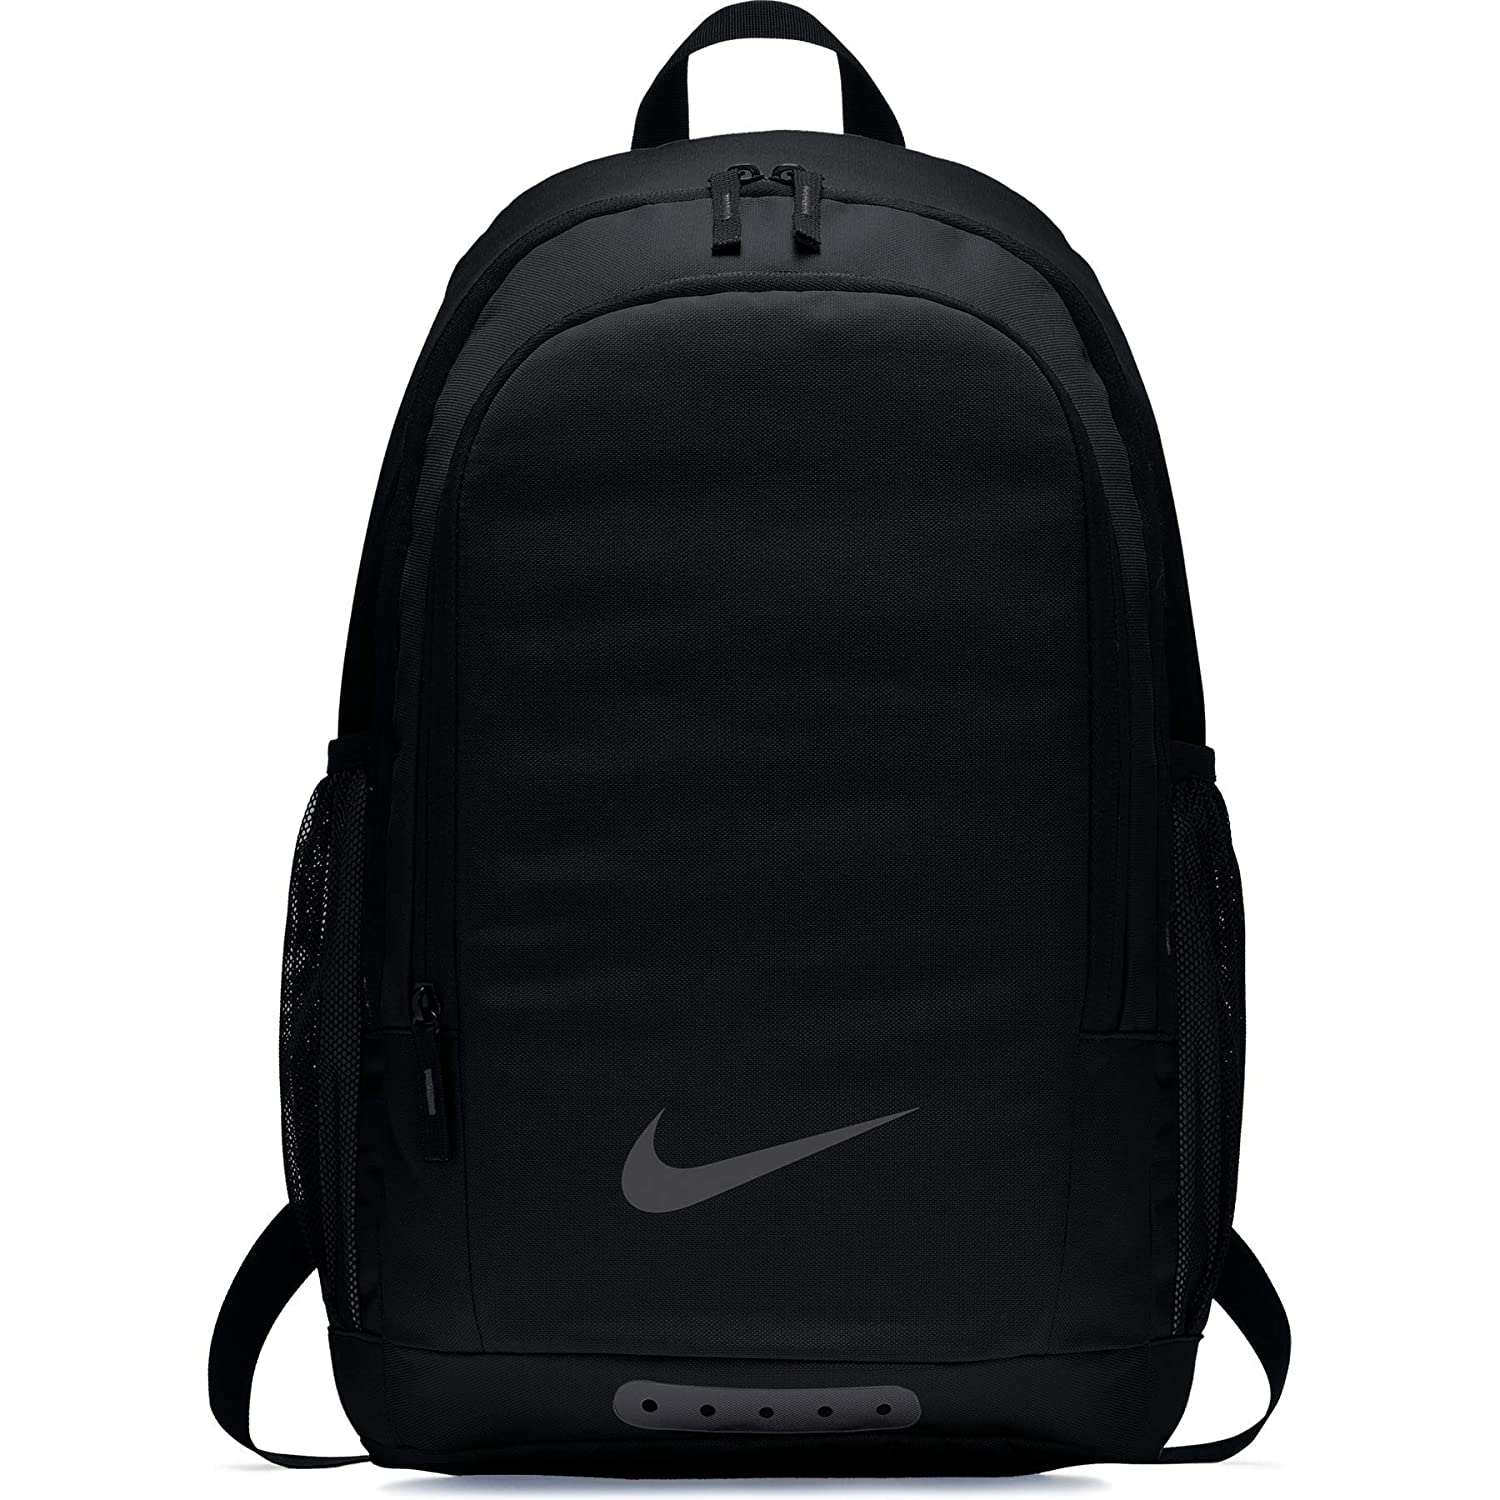 Nike Nk Acdmy Bkpk Backpack, Unisex Adulto, Black/(Anthracite), MISC